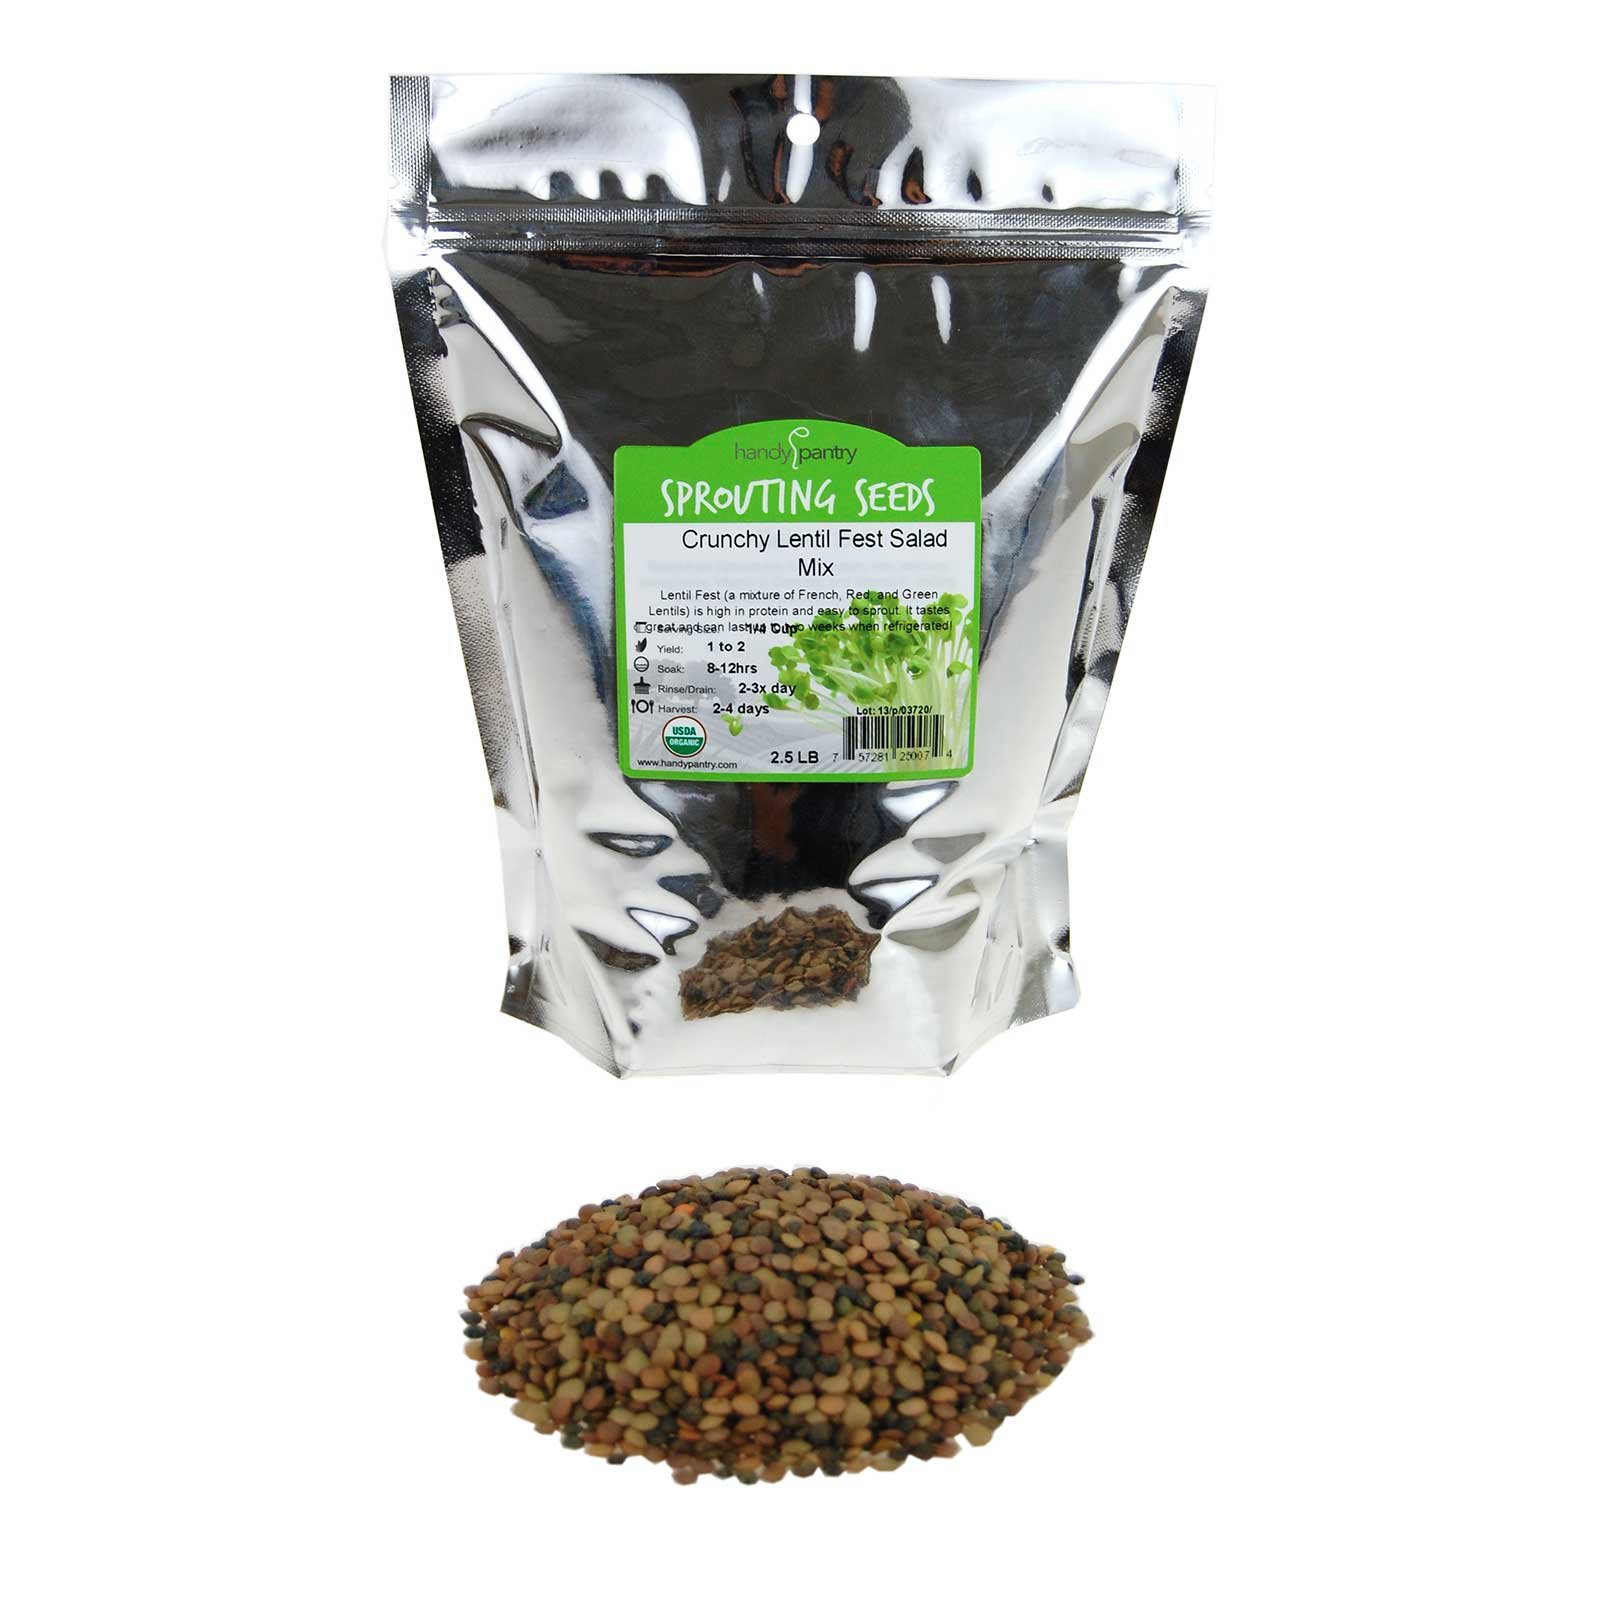 Handy Pantry Crunchy Lentil Fest Sprouting Seed Mix- 2.5 Lbs- Organic- Green, Red & French Lentils- Edible Seeds, Salad, Soup, Sprouts & Food Storage